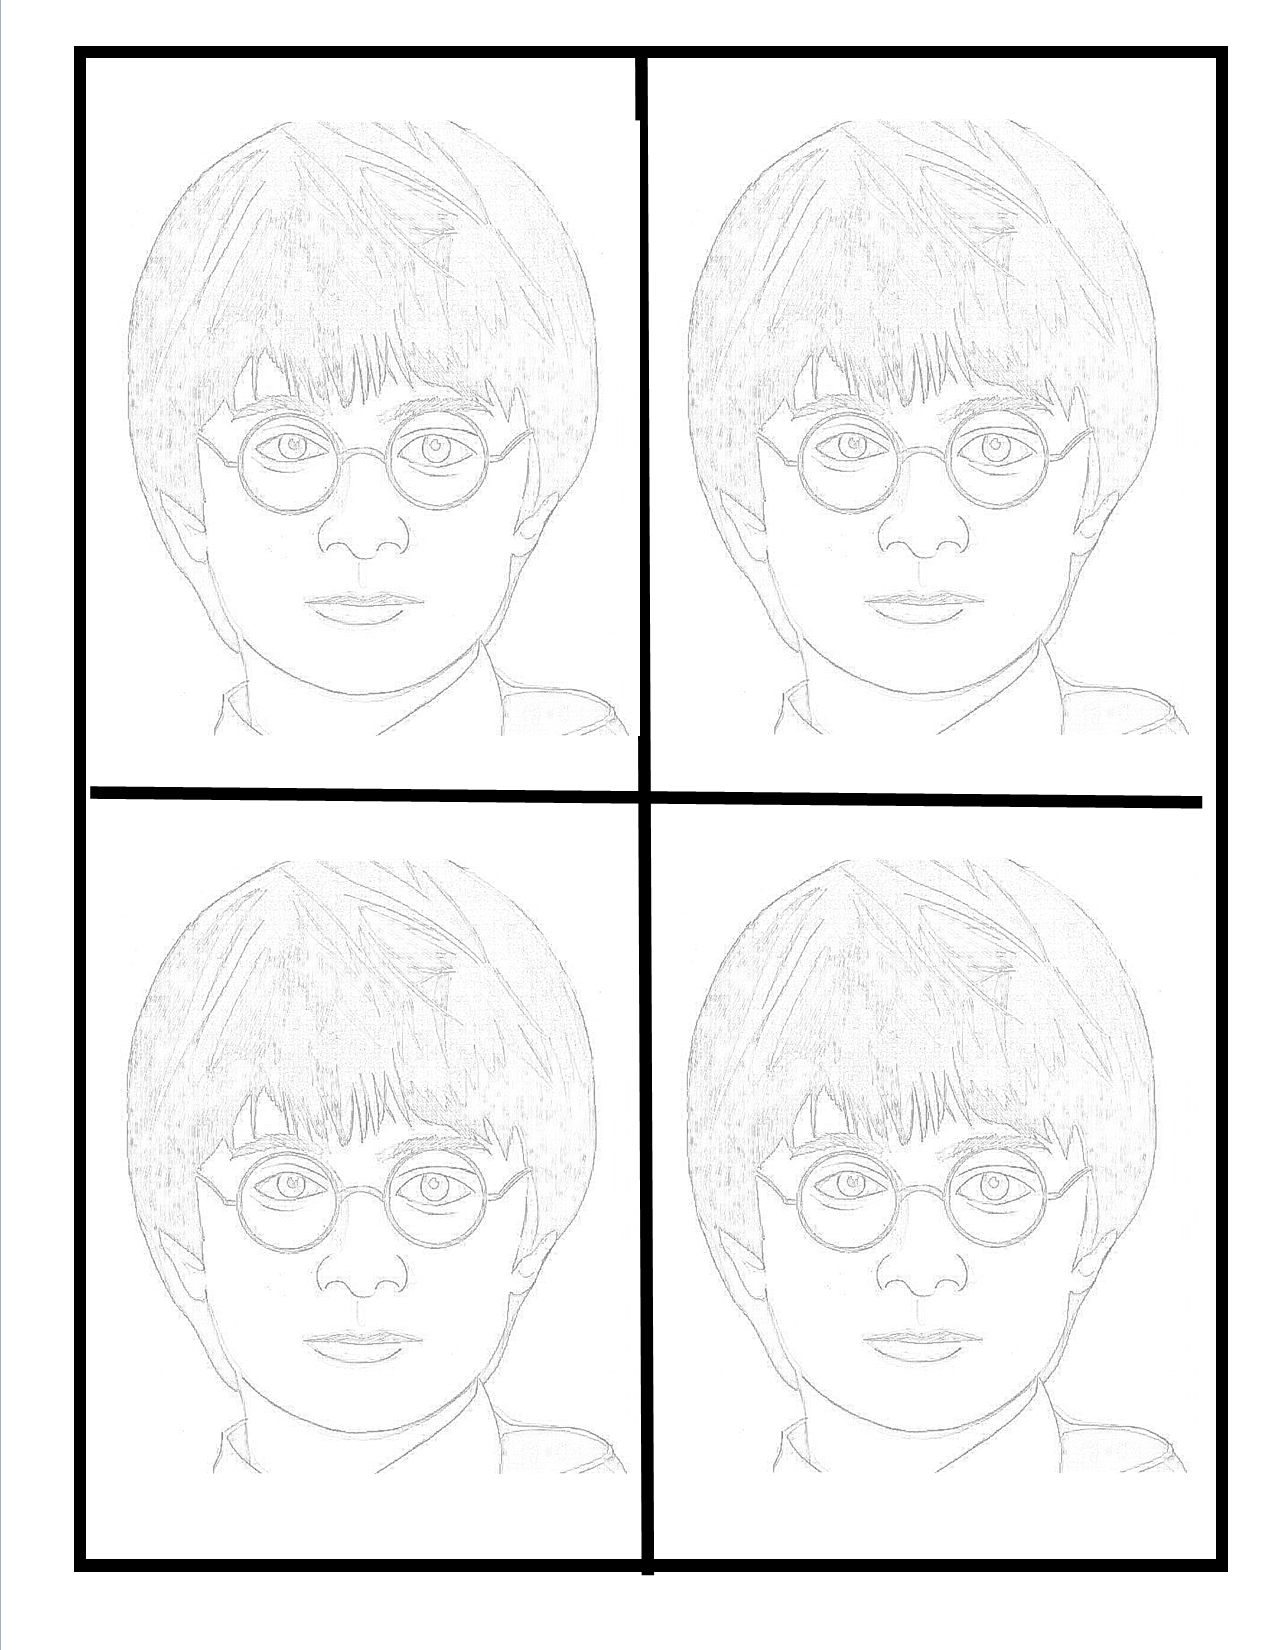 Potterdrawing 1 275 1 650 Pixels